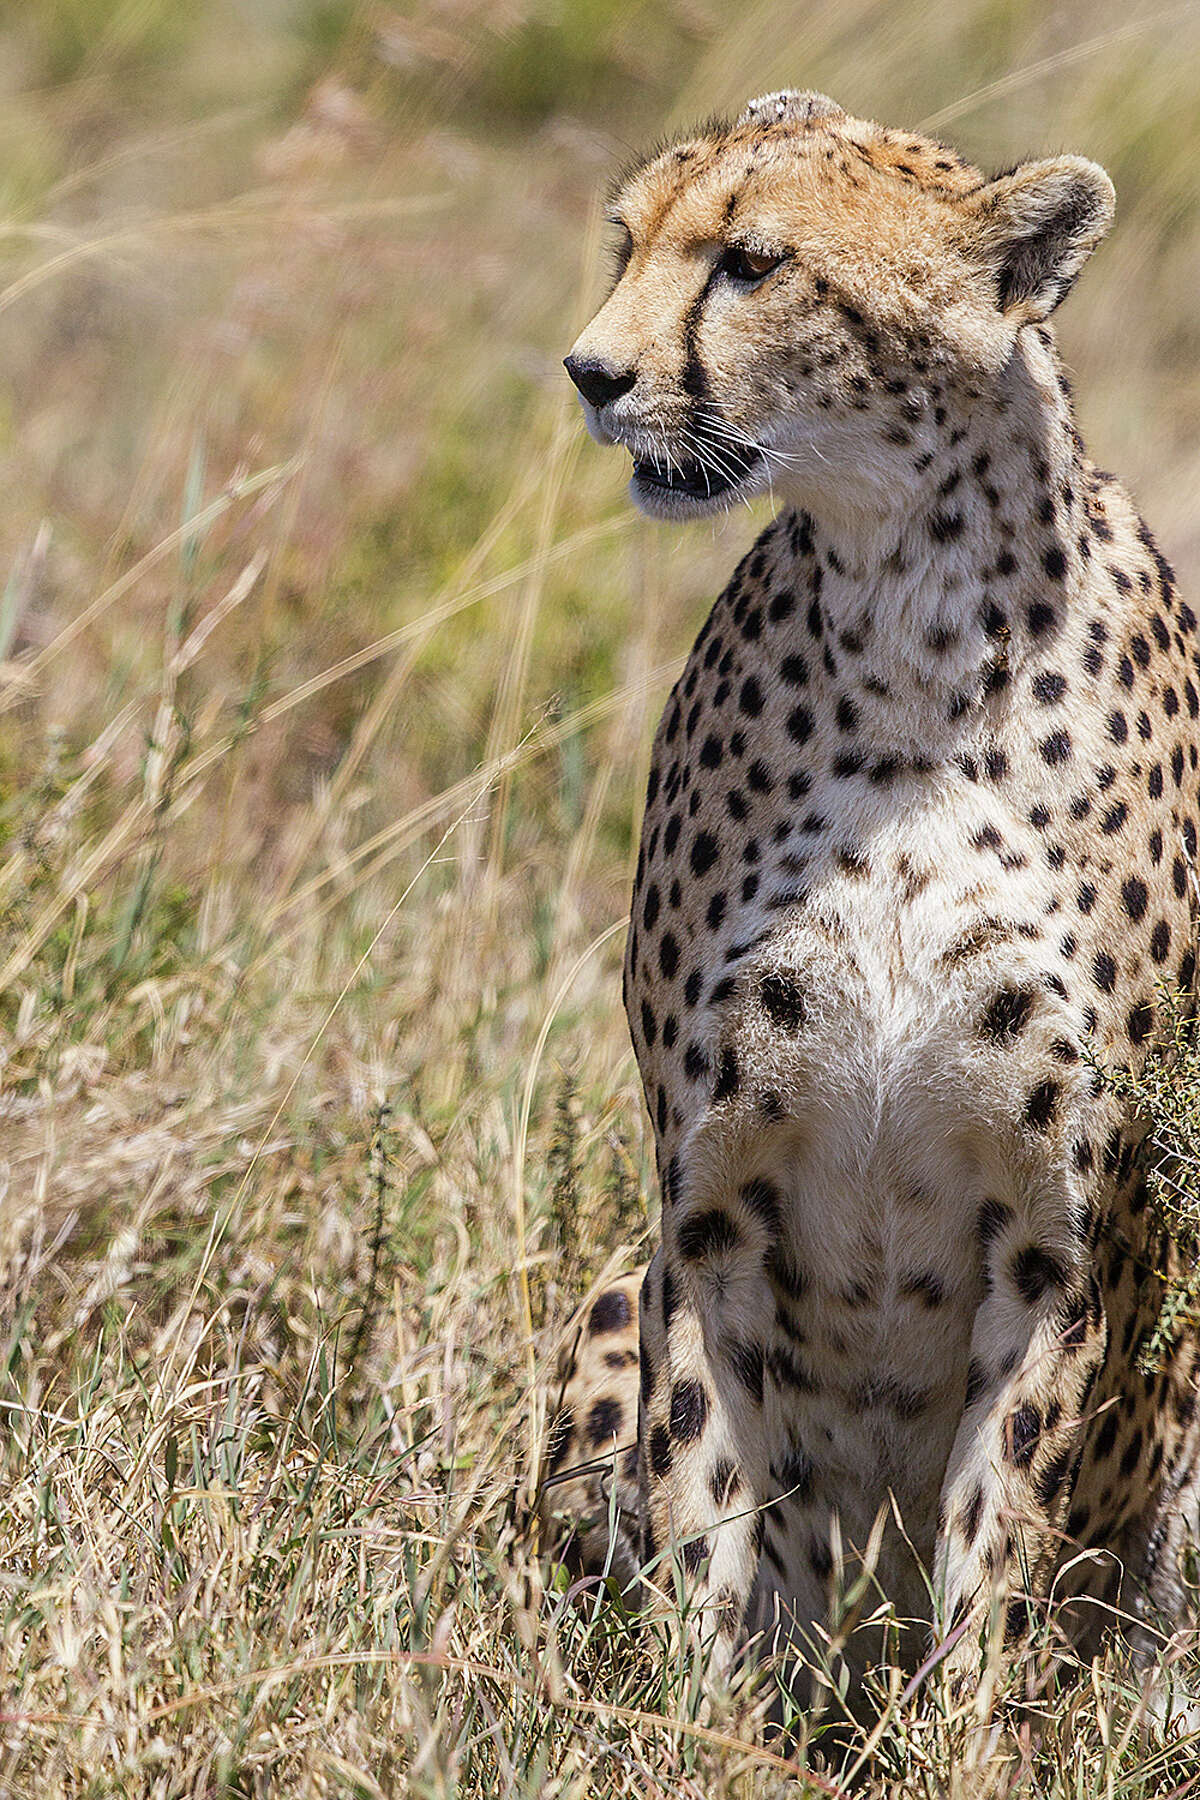 Cheetahs are the sleekest of the big cats in Africa. They need large, wide-open spaces to hunt prey and escape predators.